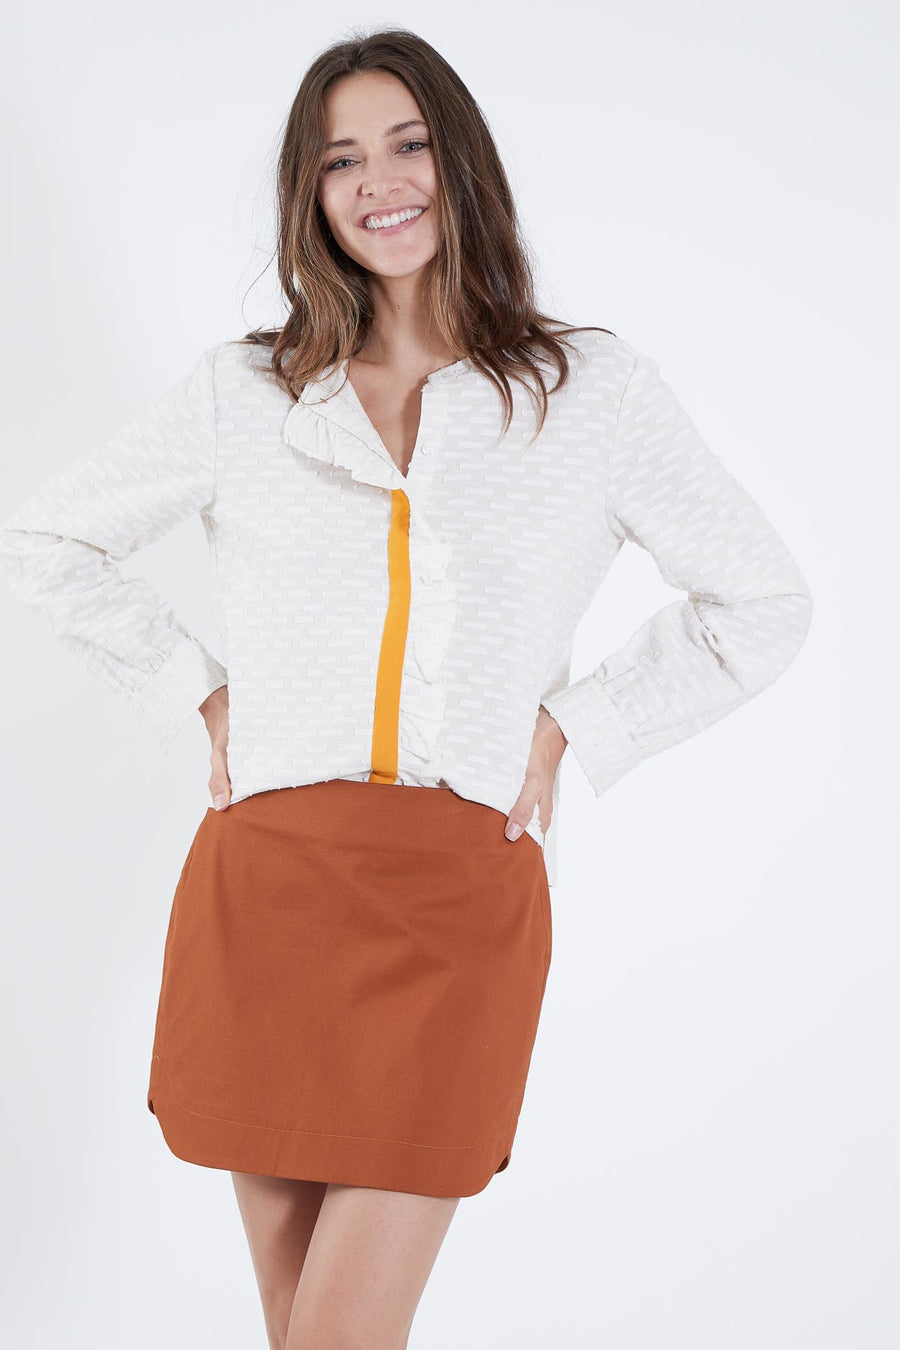 SUNNIE SKIRT - BURNT ORANGE *LIMITED*EDITION*